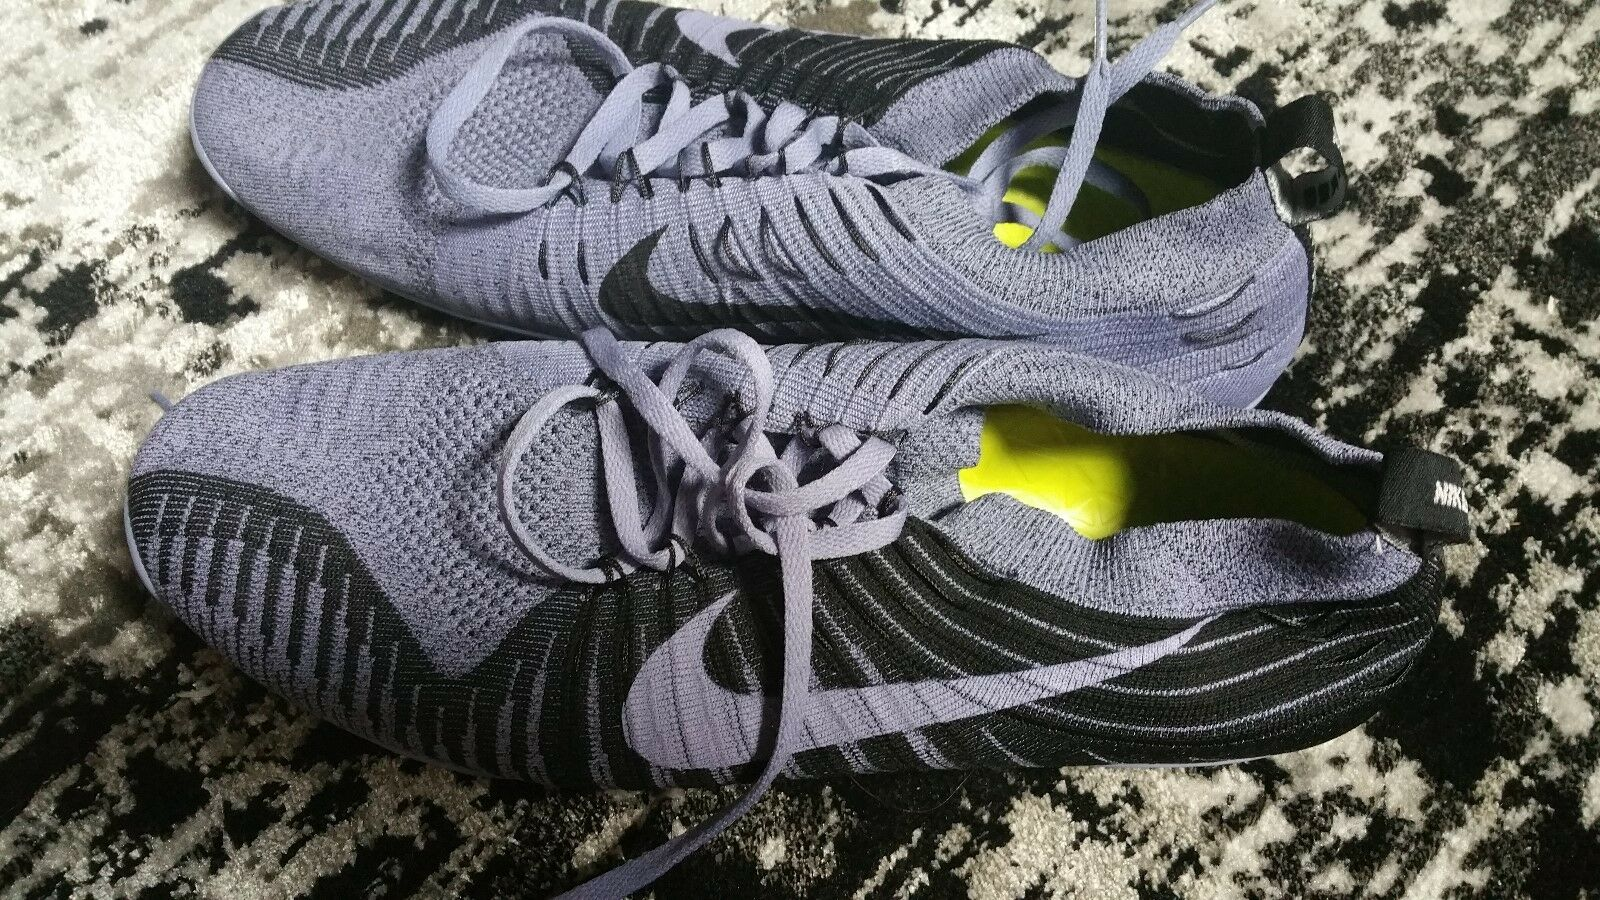 Nike  FREE HYPERFEEL RUN  MAUVE BLACK SPIRAL Price reduction best-selling model of the brand